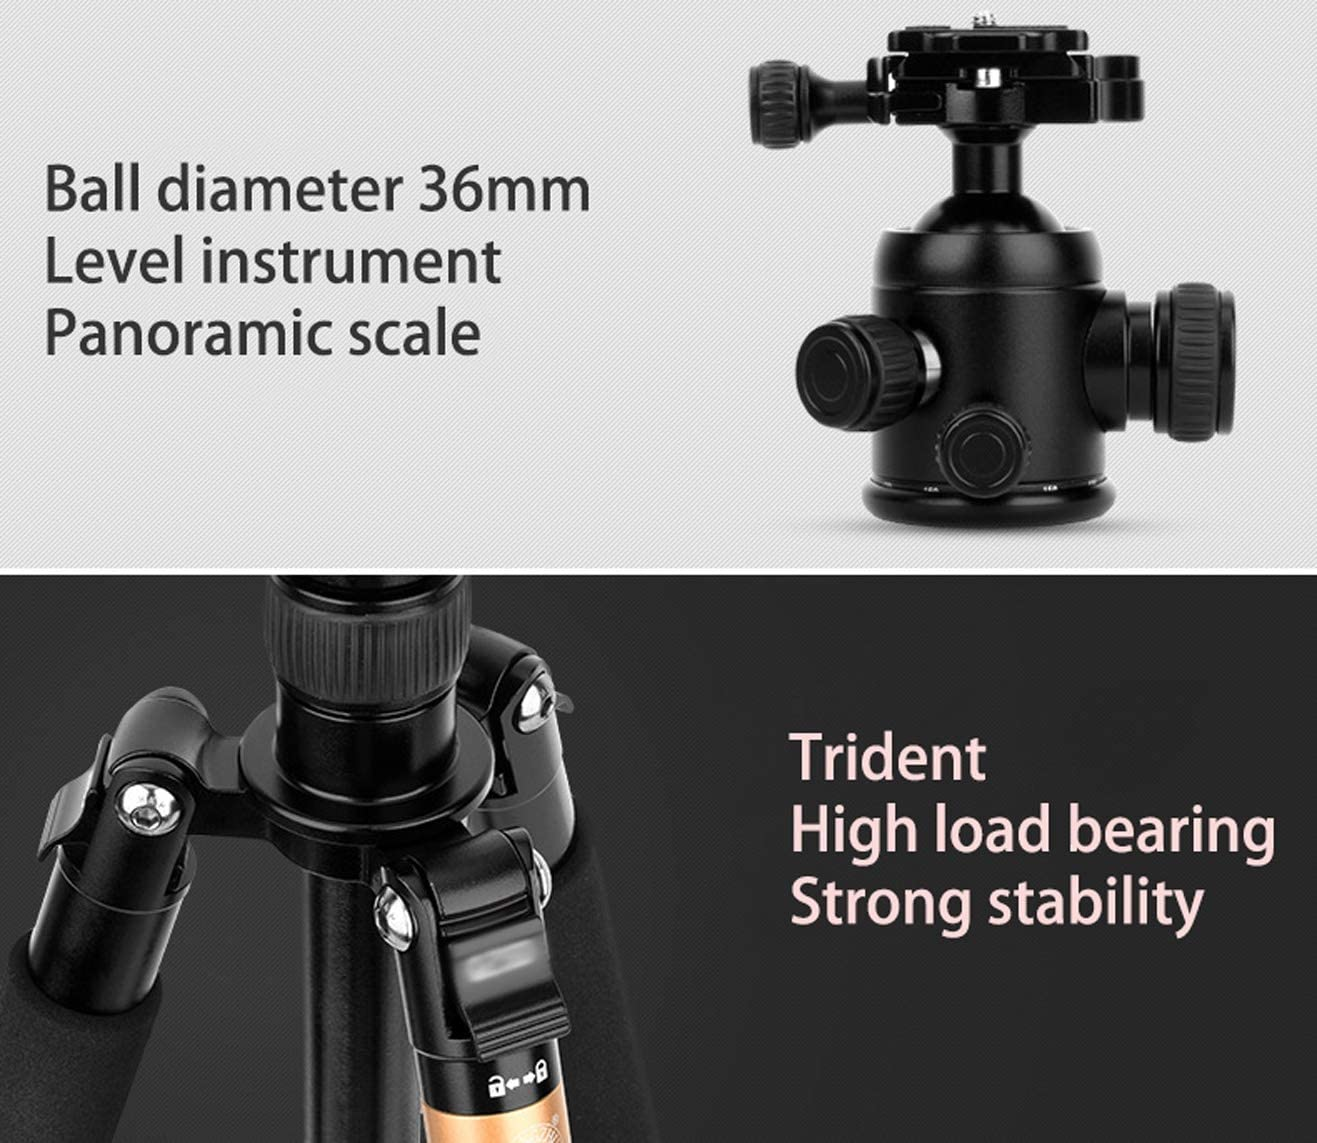 LLluckyHW 63 Inches Tripod Monopod Tabletop Tripod Adjustable Selfie Pole Macro Mini Tripod Carbon Fibre Tripod Quick Release Plate Horizontal Arm Transverse Center Column Panoramic Shooting